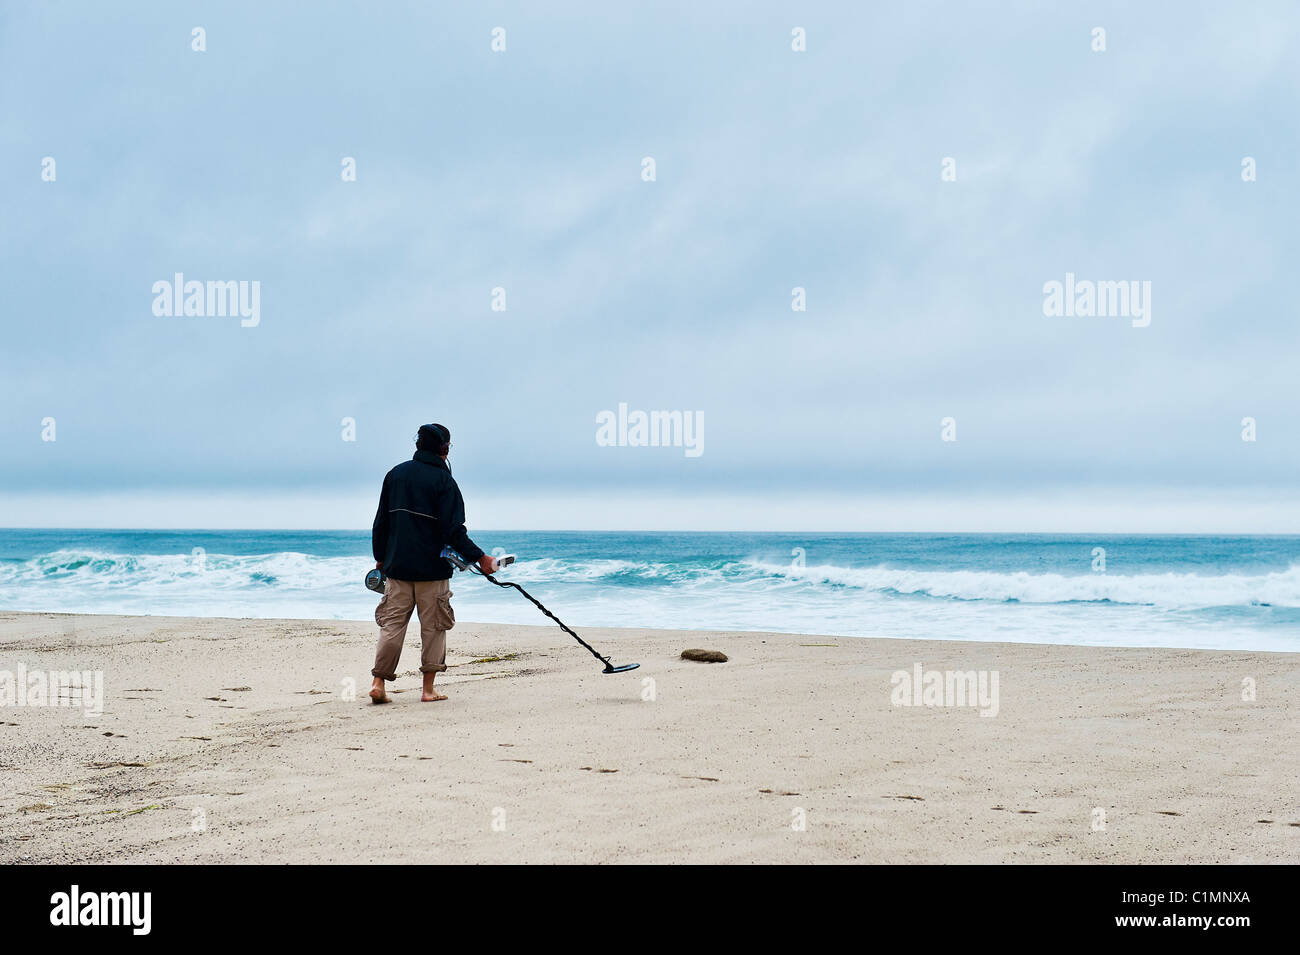 Man searching the beach with a metal detector. - Stock Image